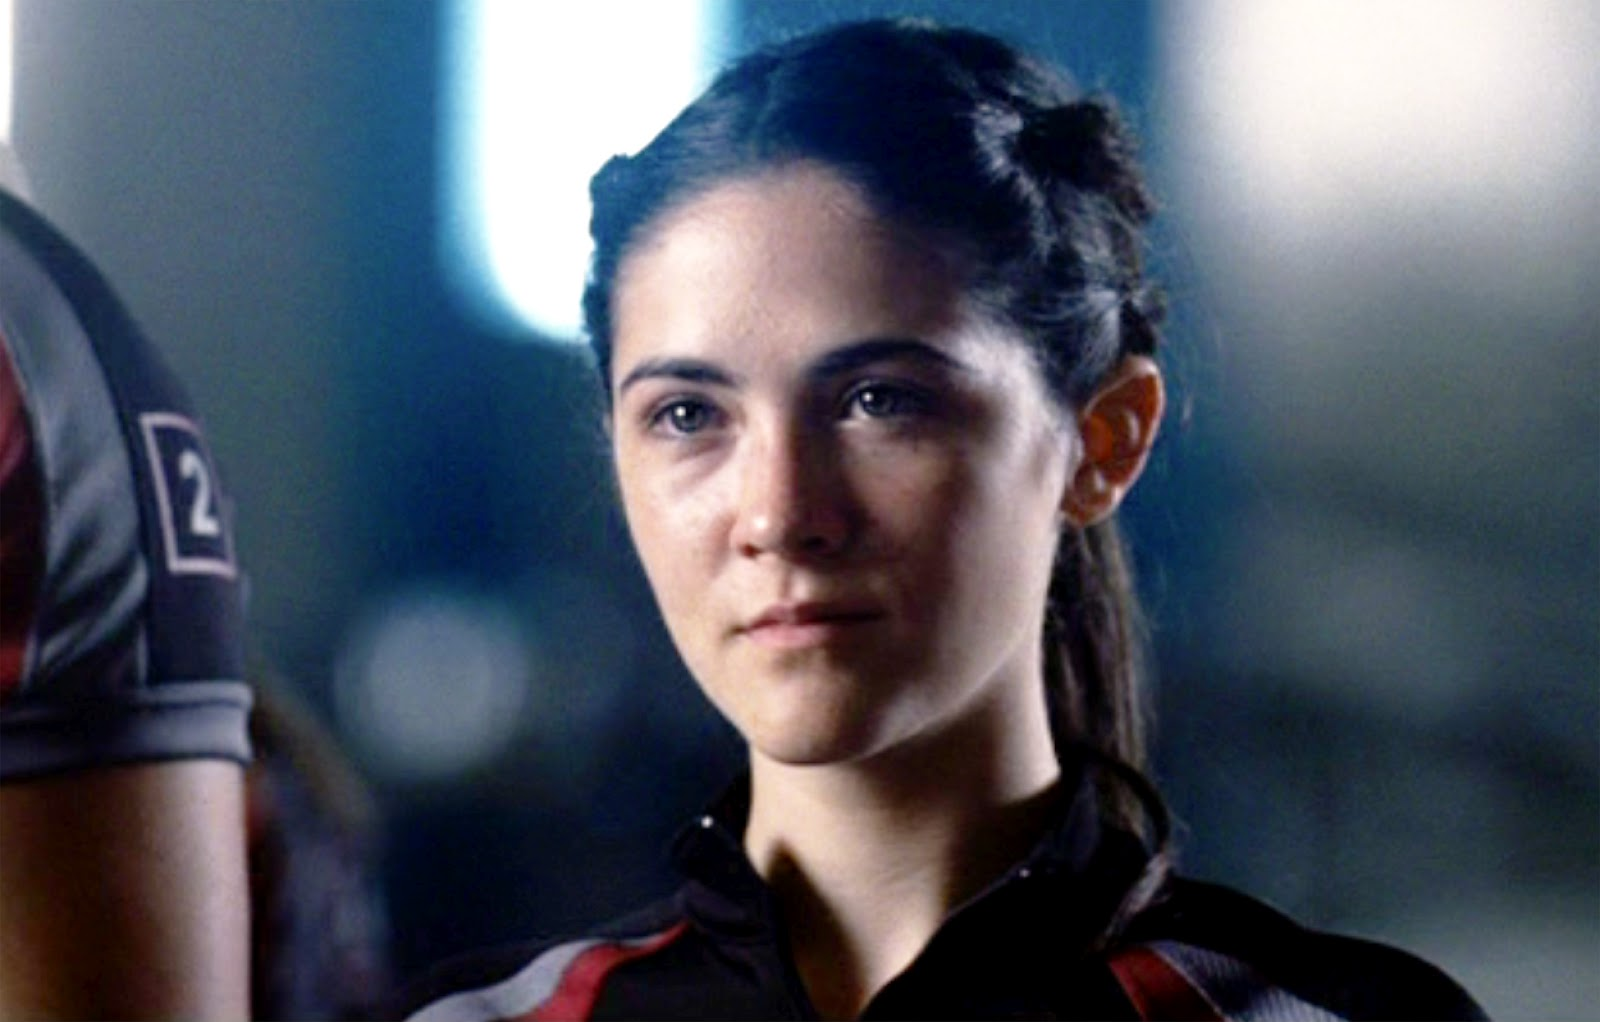 Clove And Cato Hunger Games Images & Pictures - Becuo